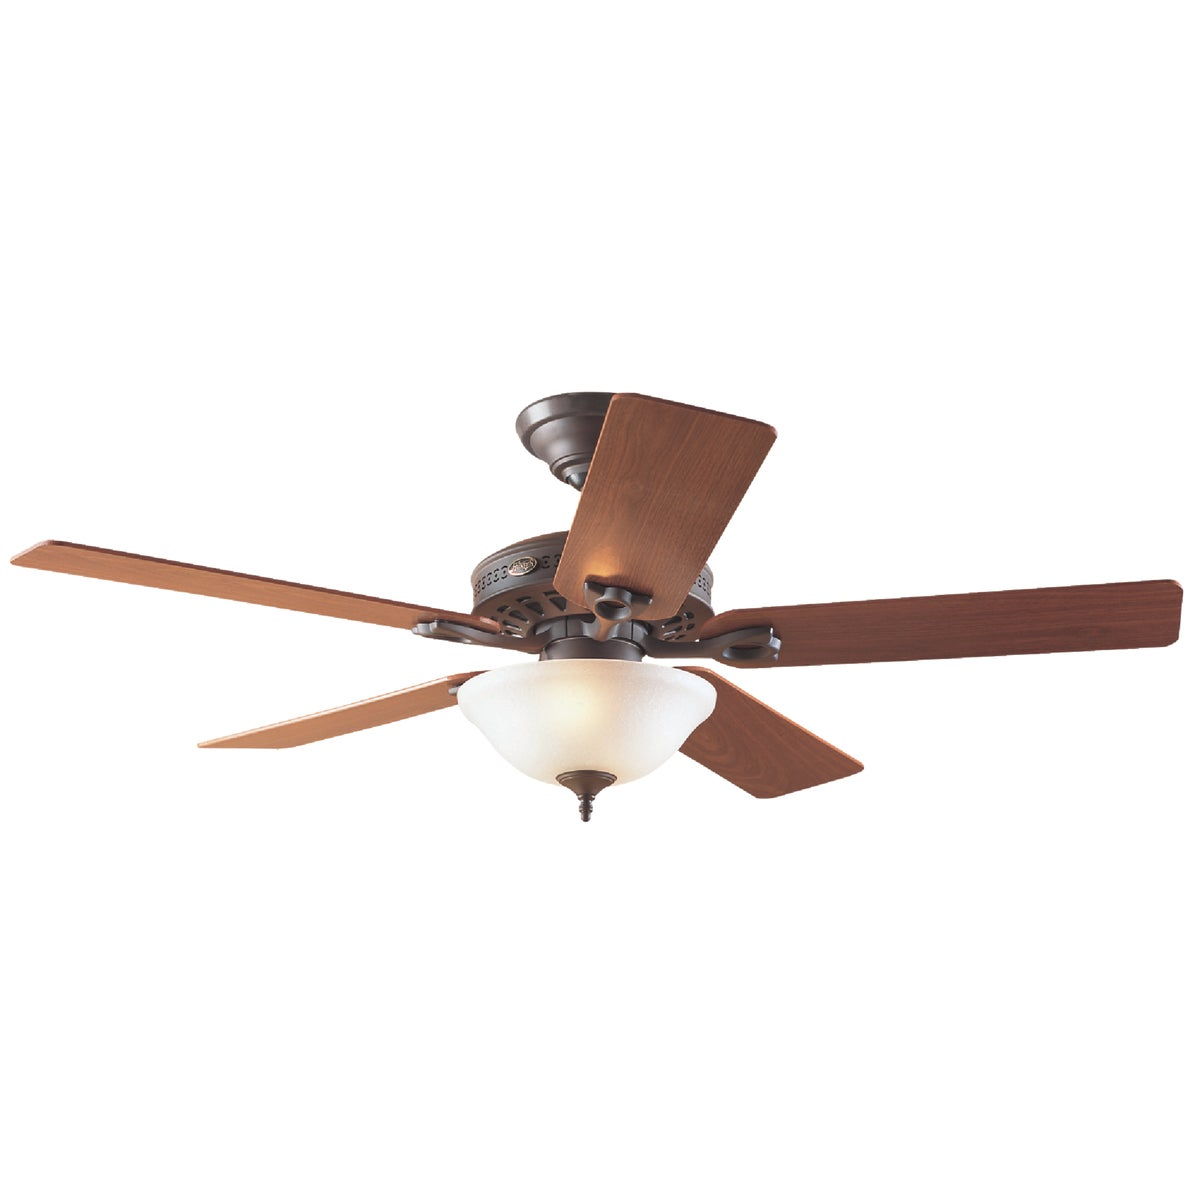 "52"" BRZ CEIL FAN W/LIGHT - 53057 by Hunter Fan Co"